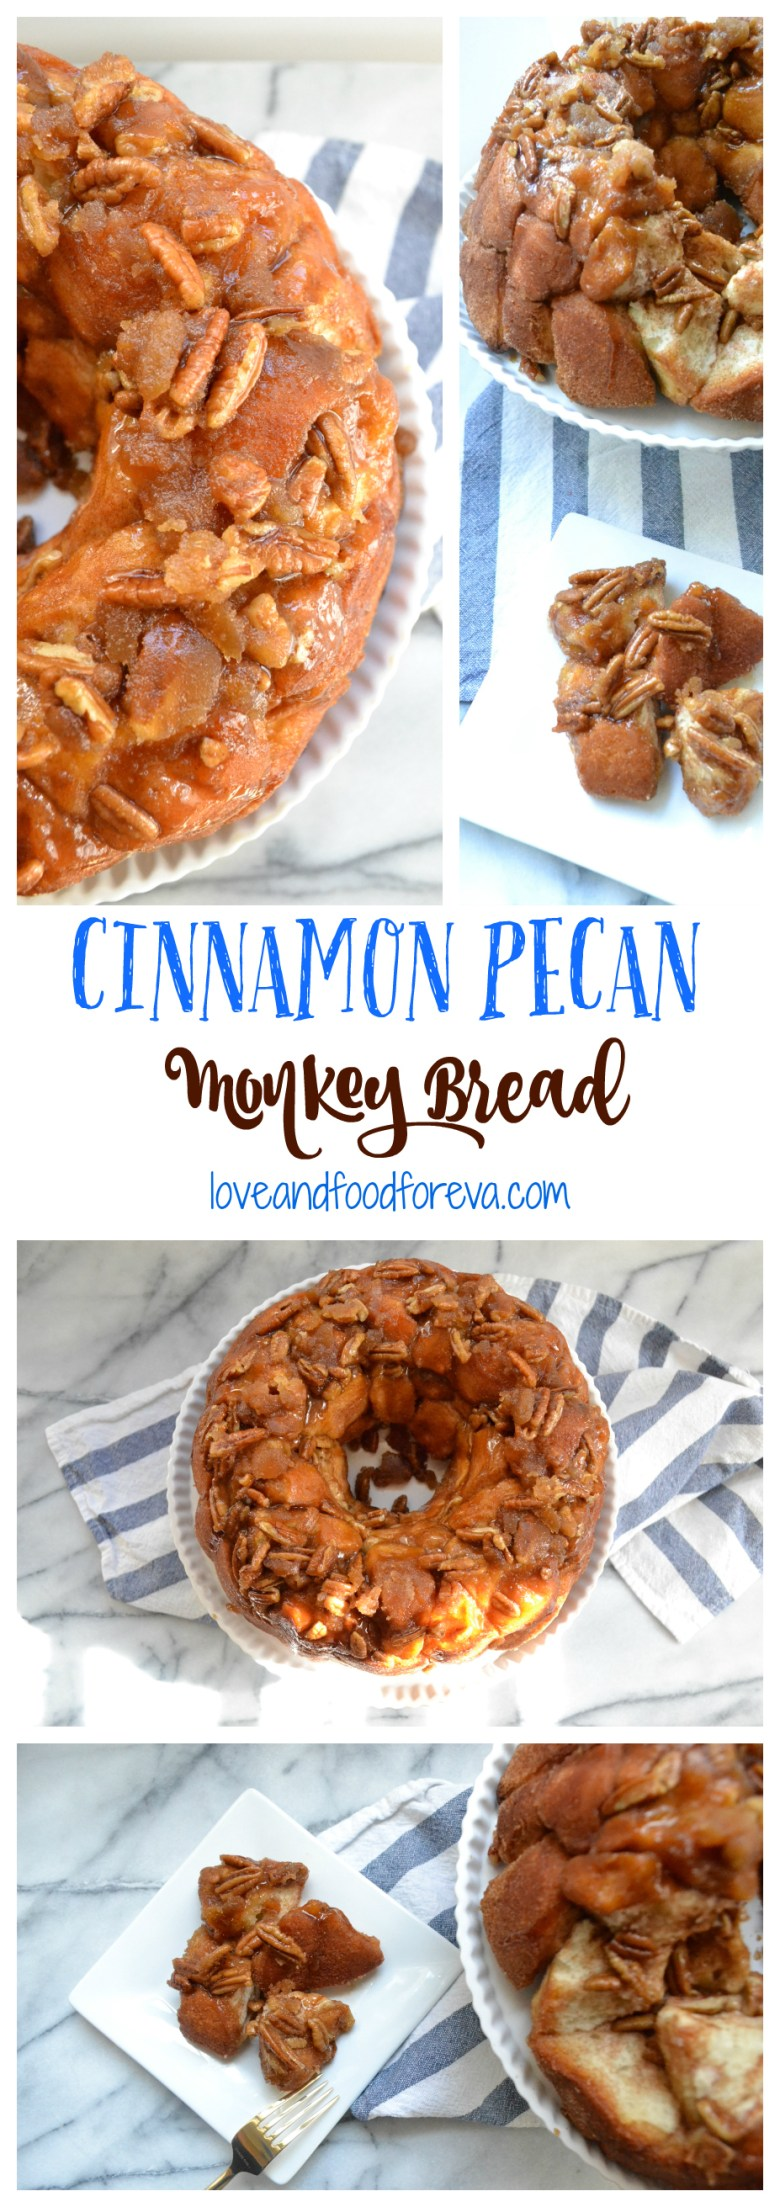 Cinnamon Pecan Monkey Bread - so easy to make and guaranteed to be a crowd favorite!